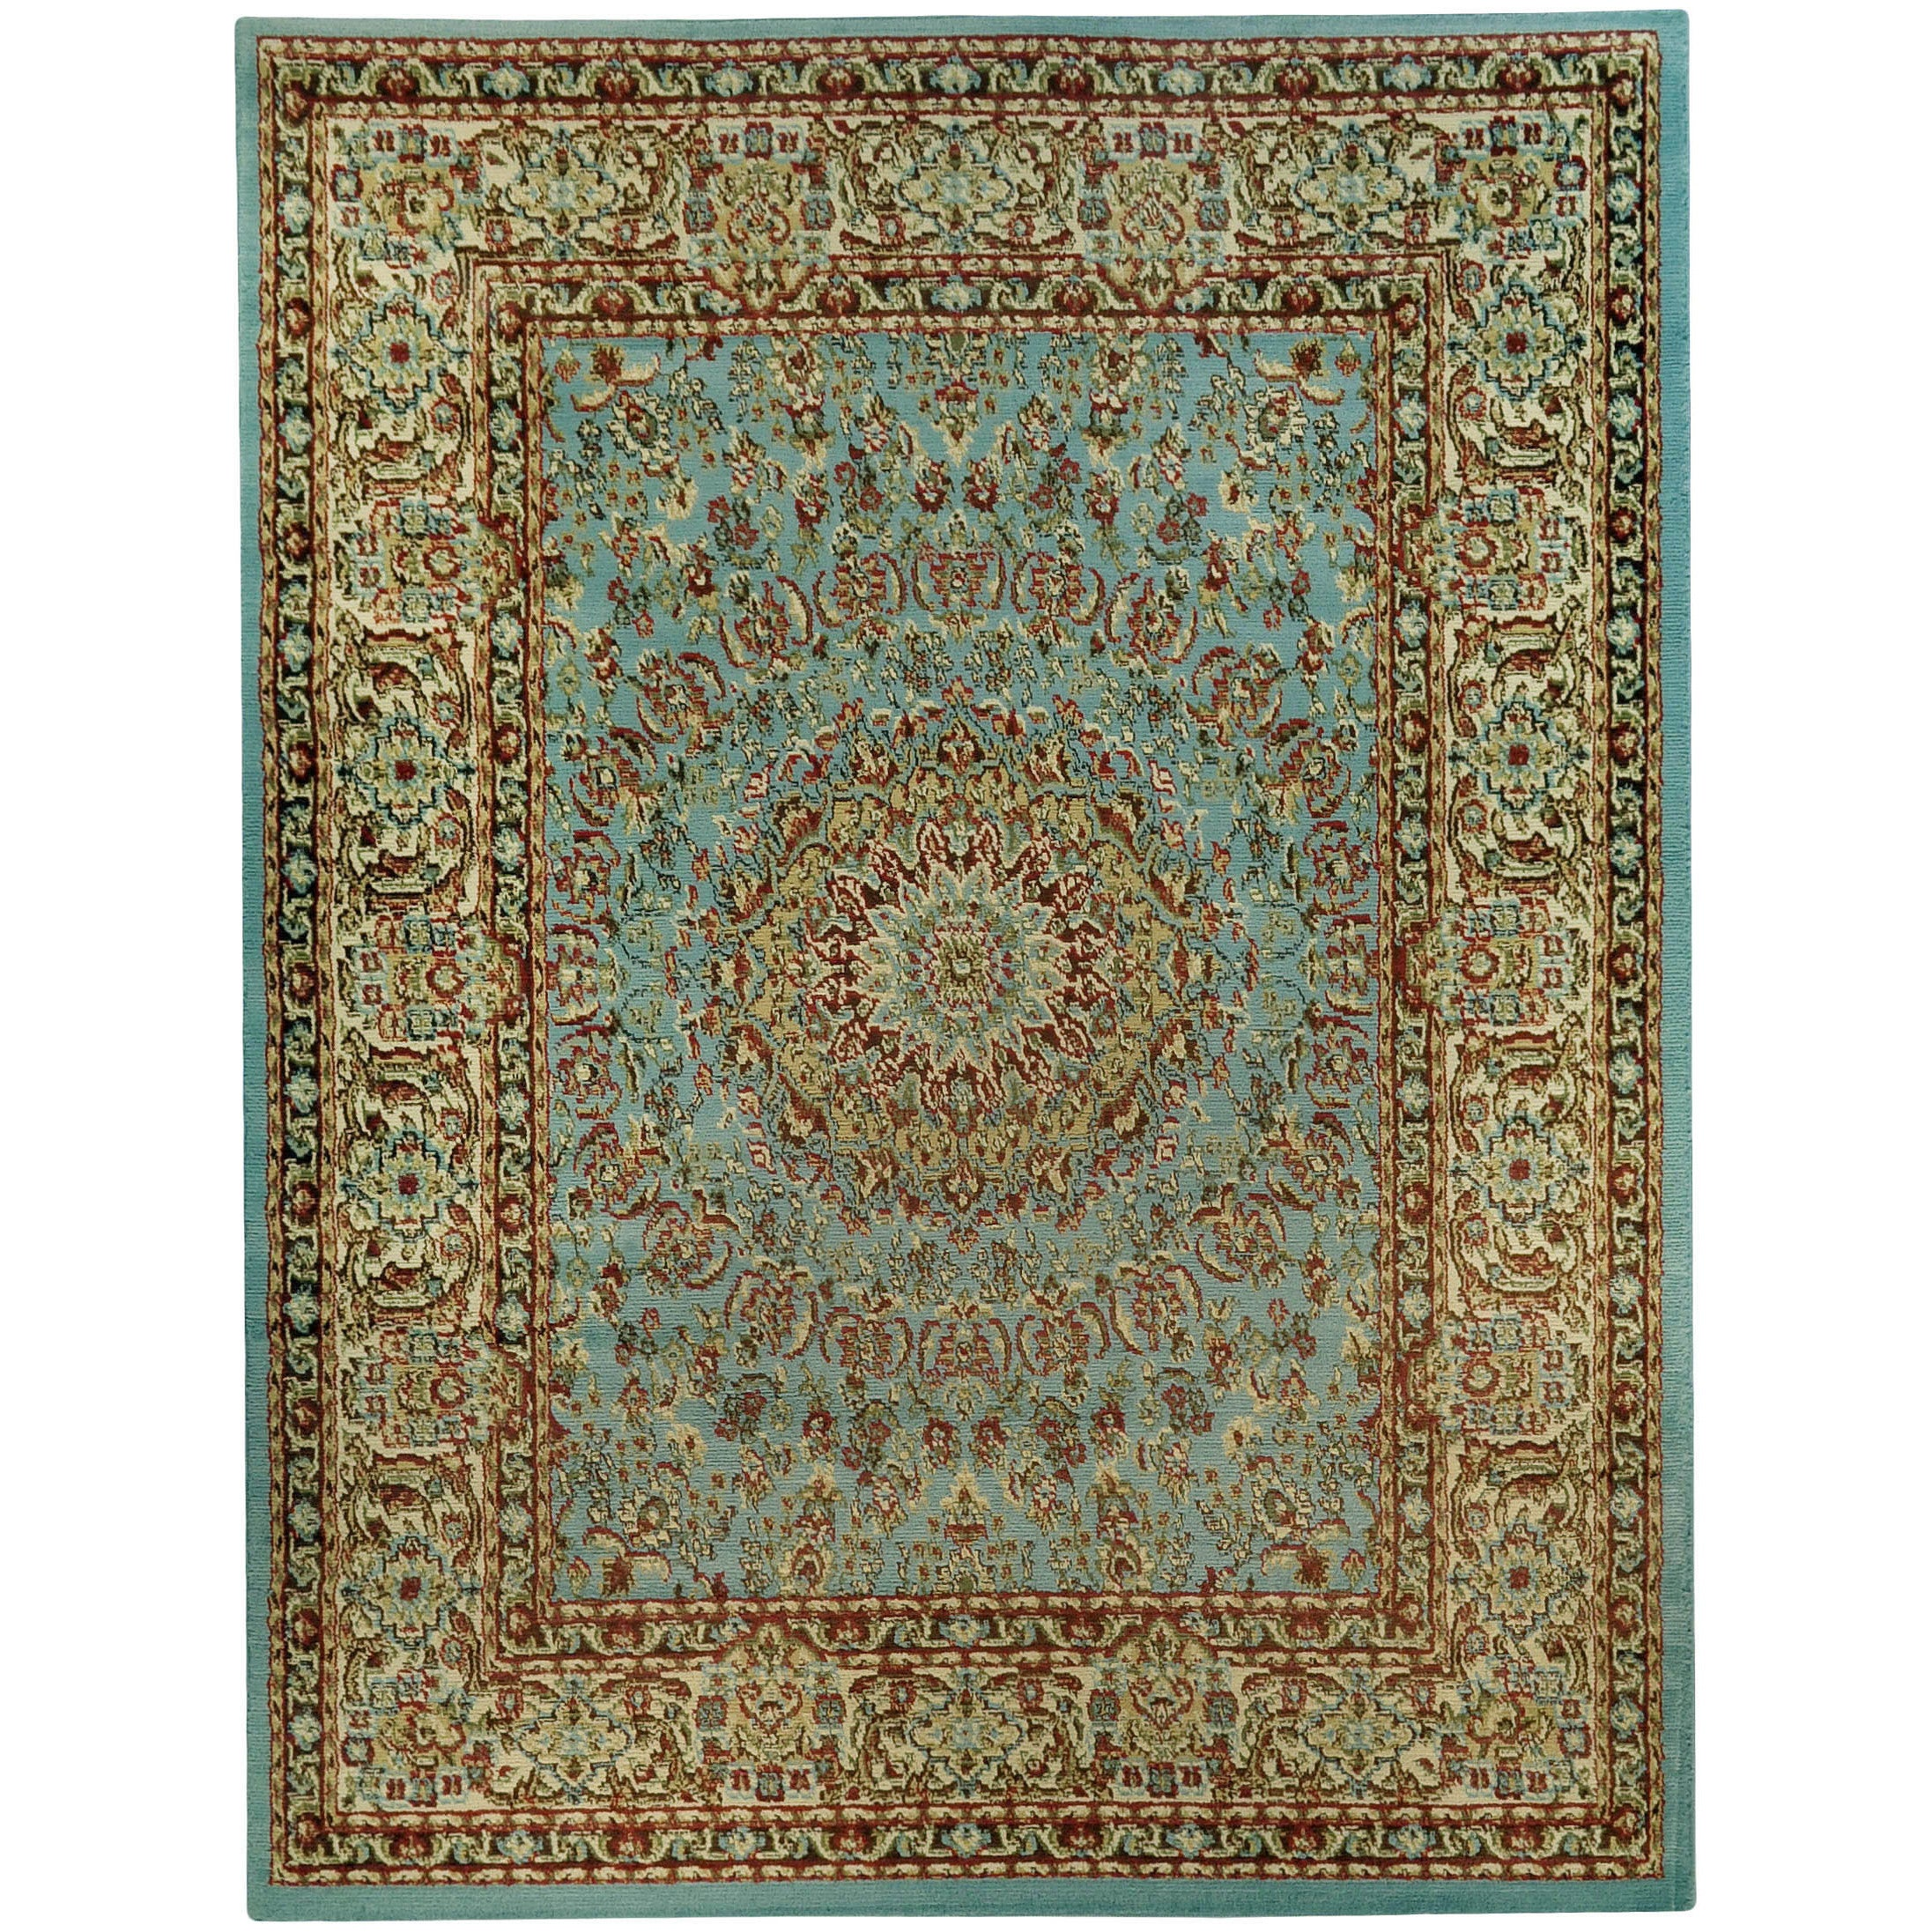 Pasha Collection Medallion Traditional Ocean Blue Area Rug (7u002710 X 10u00276)    Free Shipping Today   Overstock.com   15770306